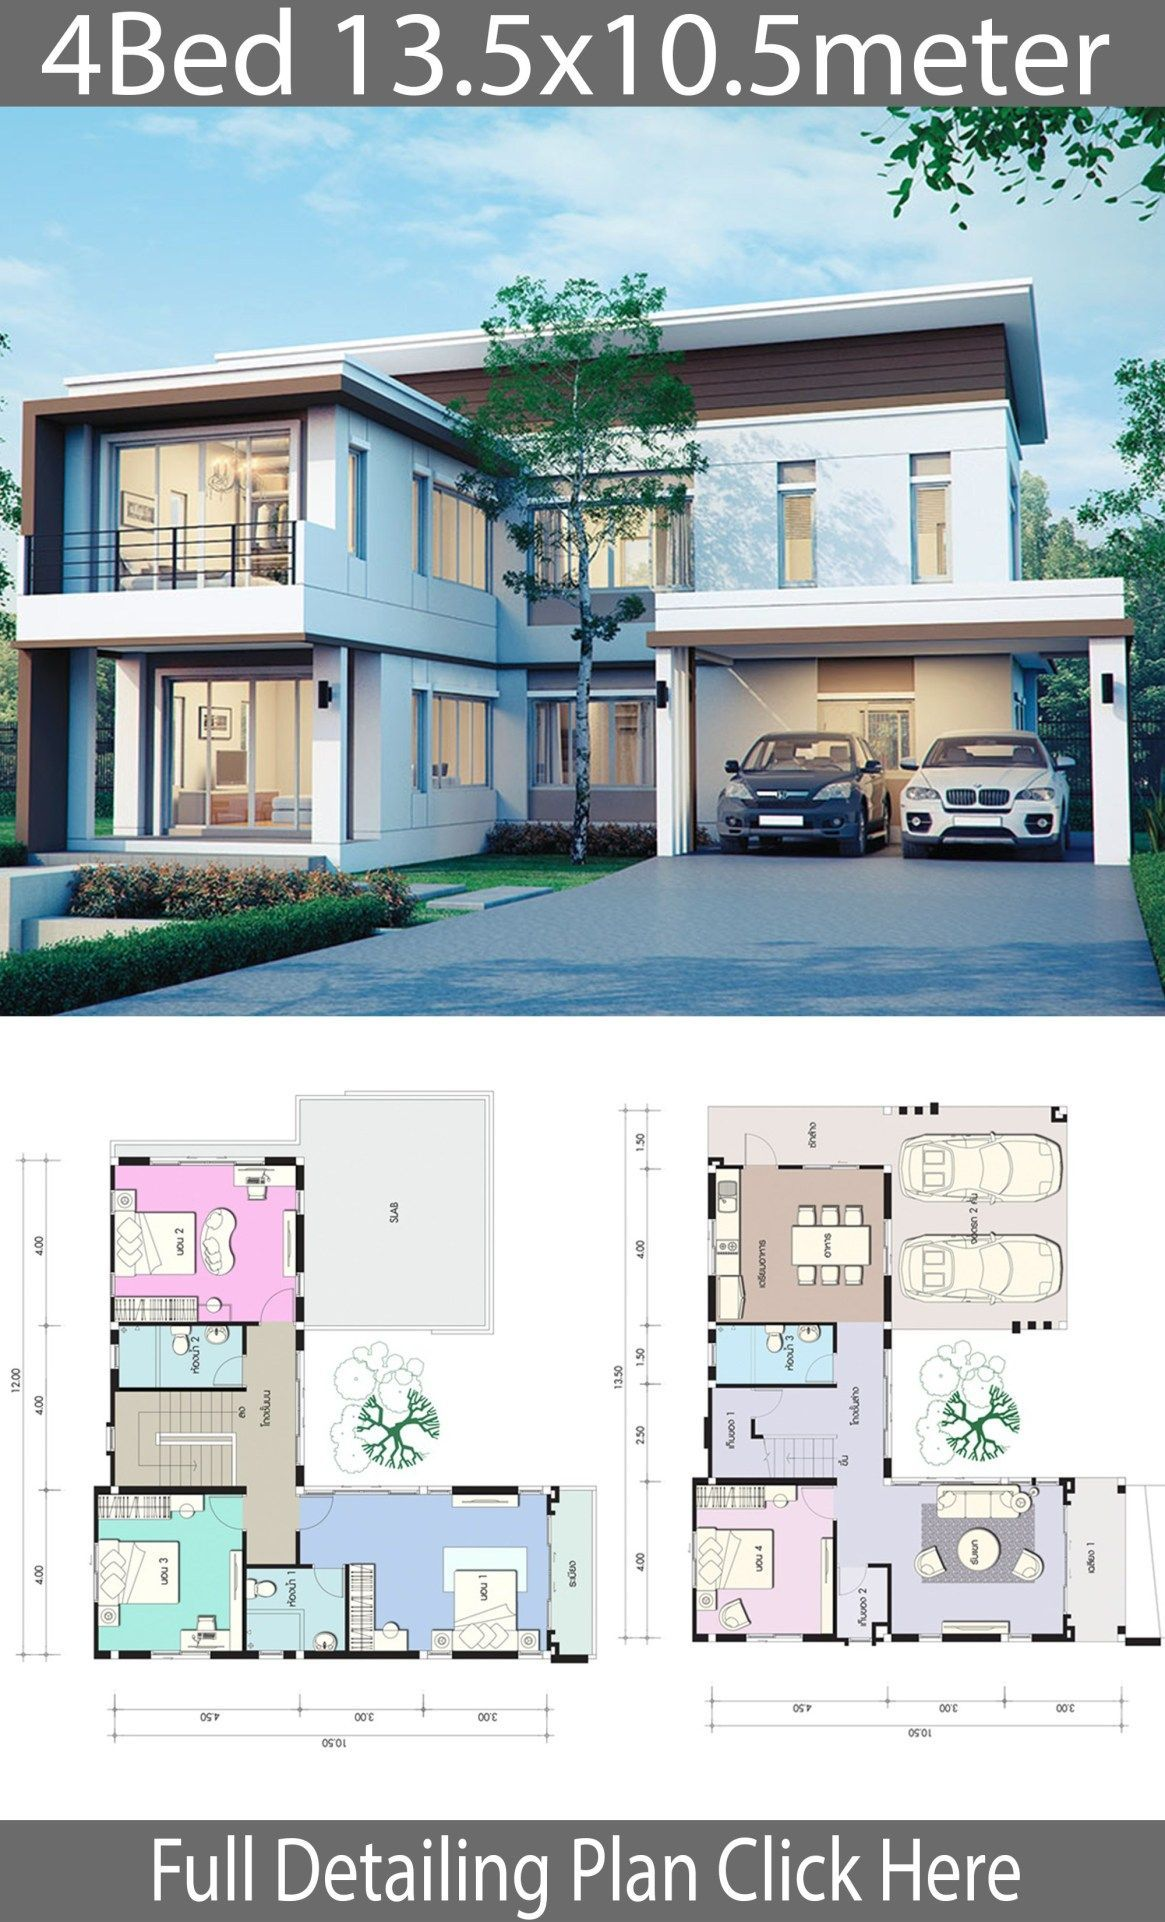 House Design Plan 13 5x10 5m With 4 Bedrooms Home Design With Plansearch 135x105m 2storeyh Smart Home Design Craftsman House Designs Country House Design